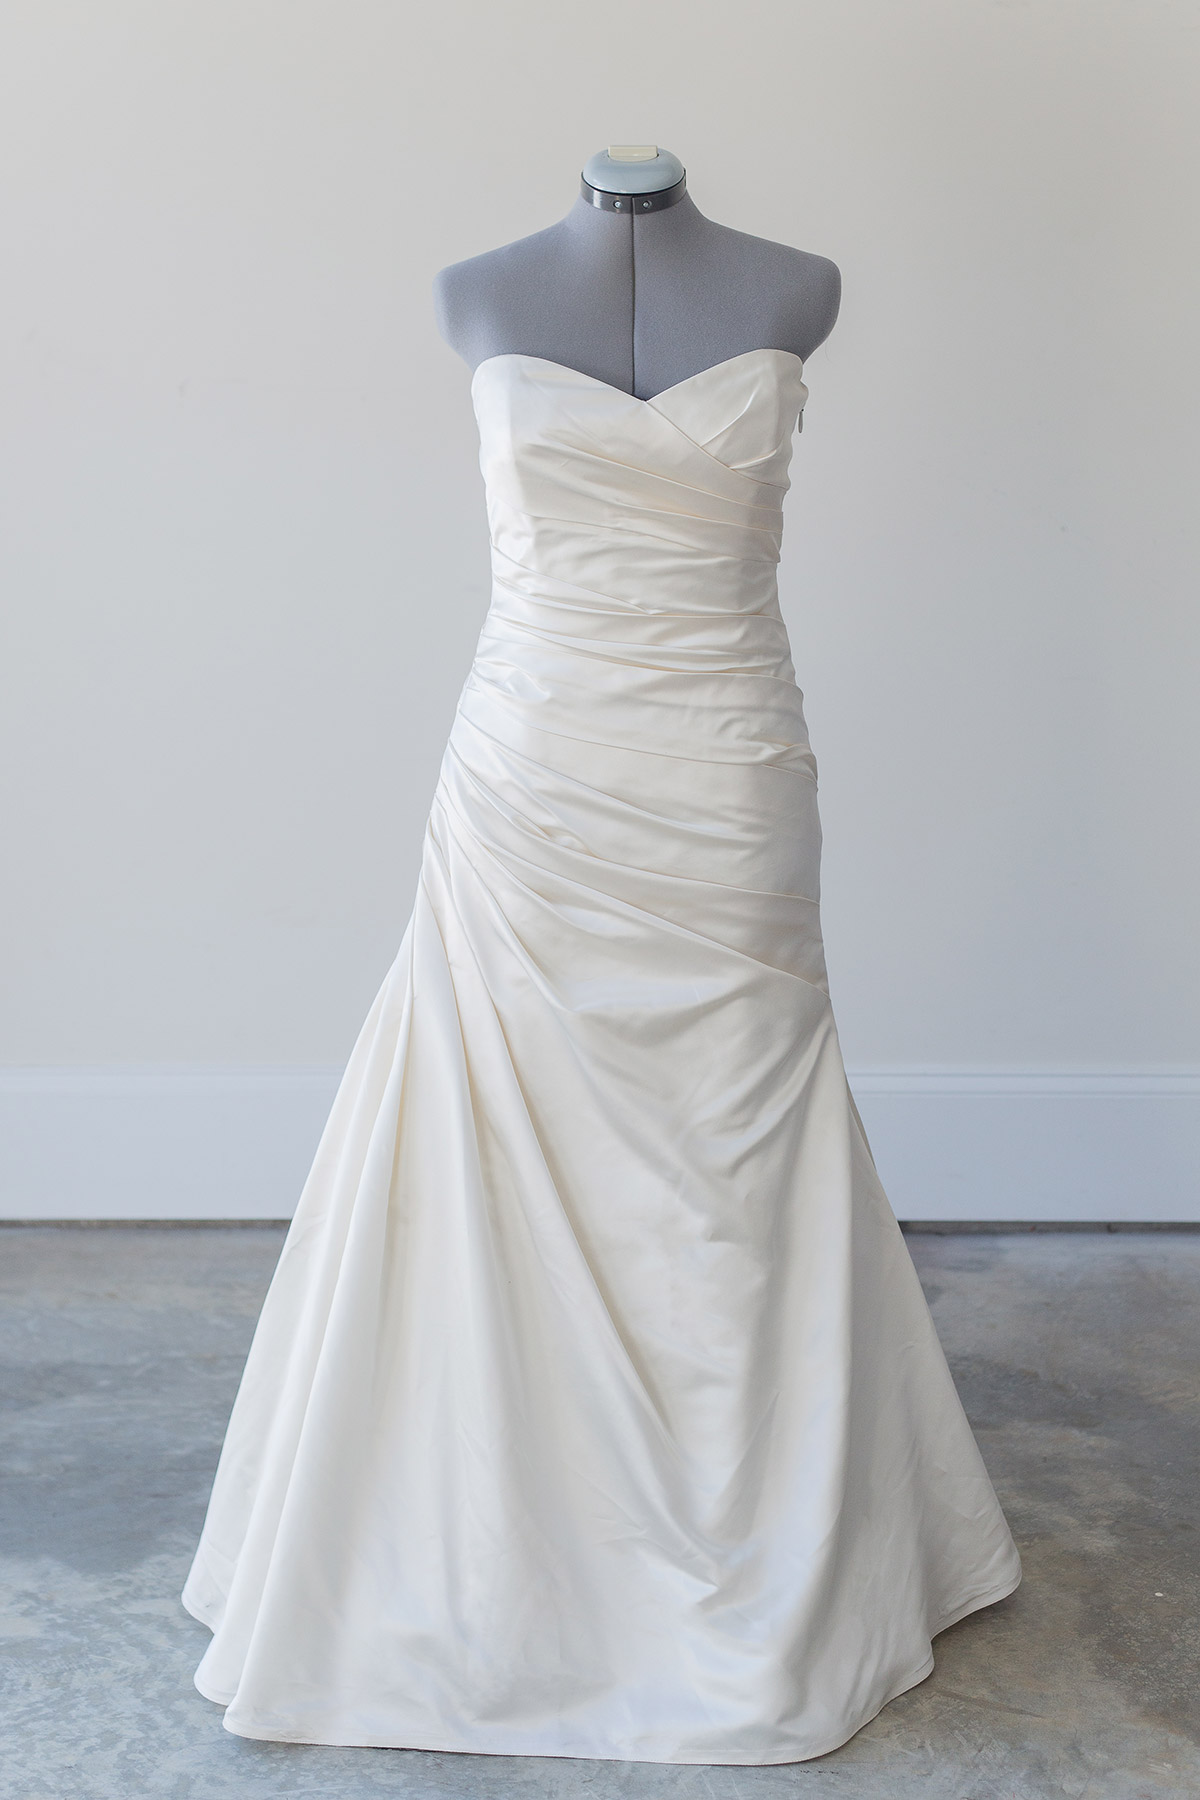 Monique lhuillier size  - $1400 - (51% OFF)